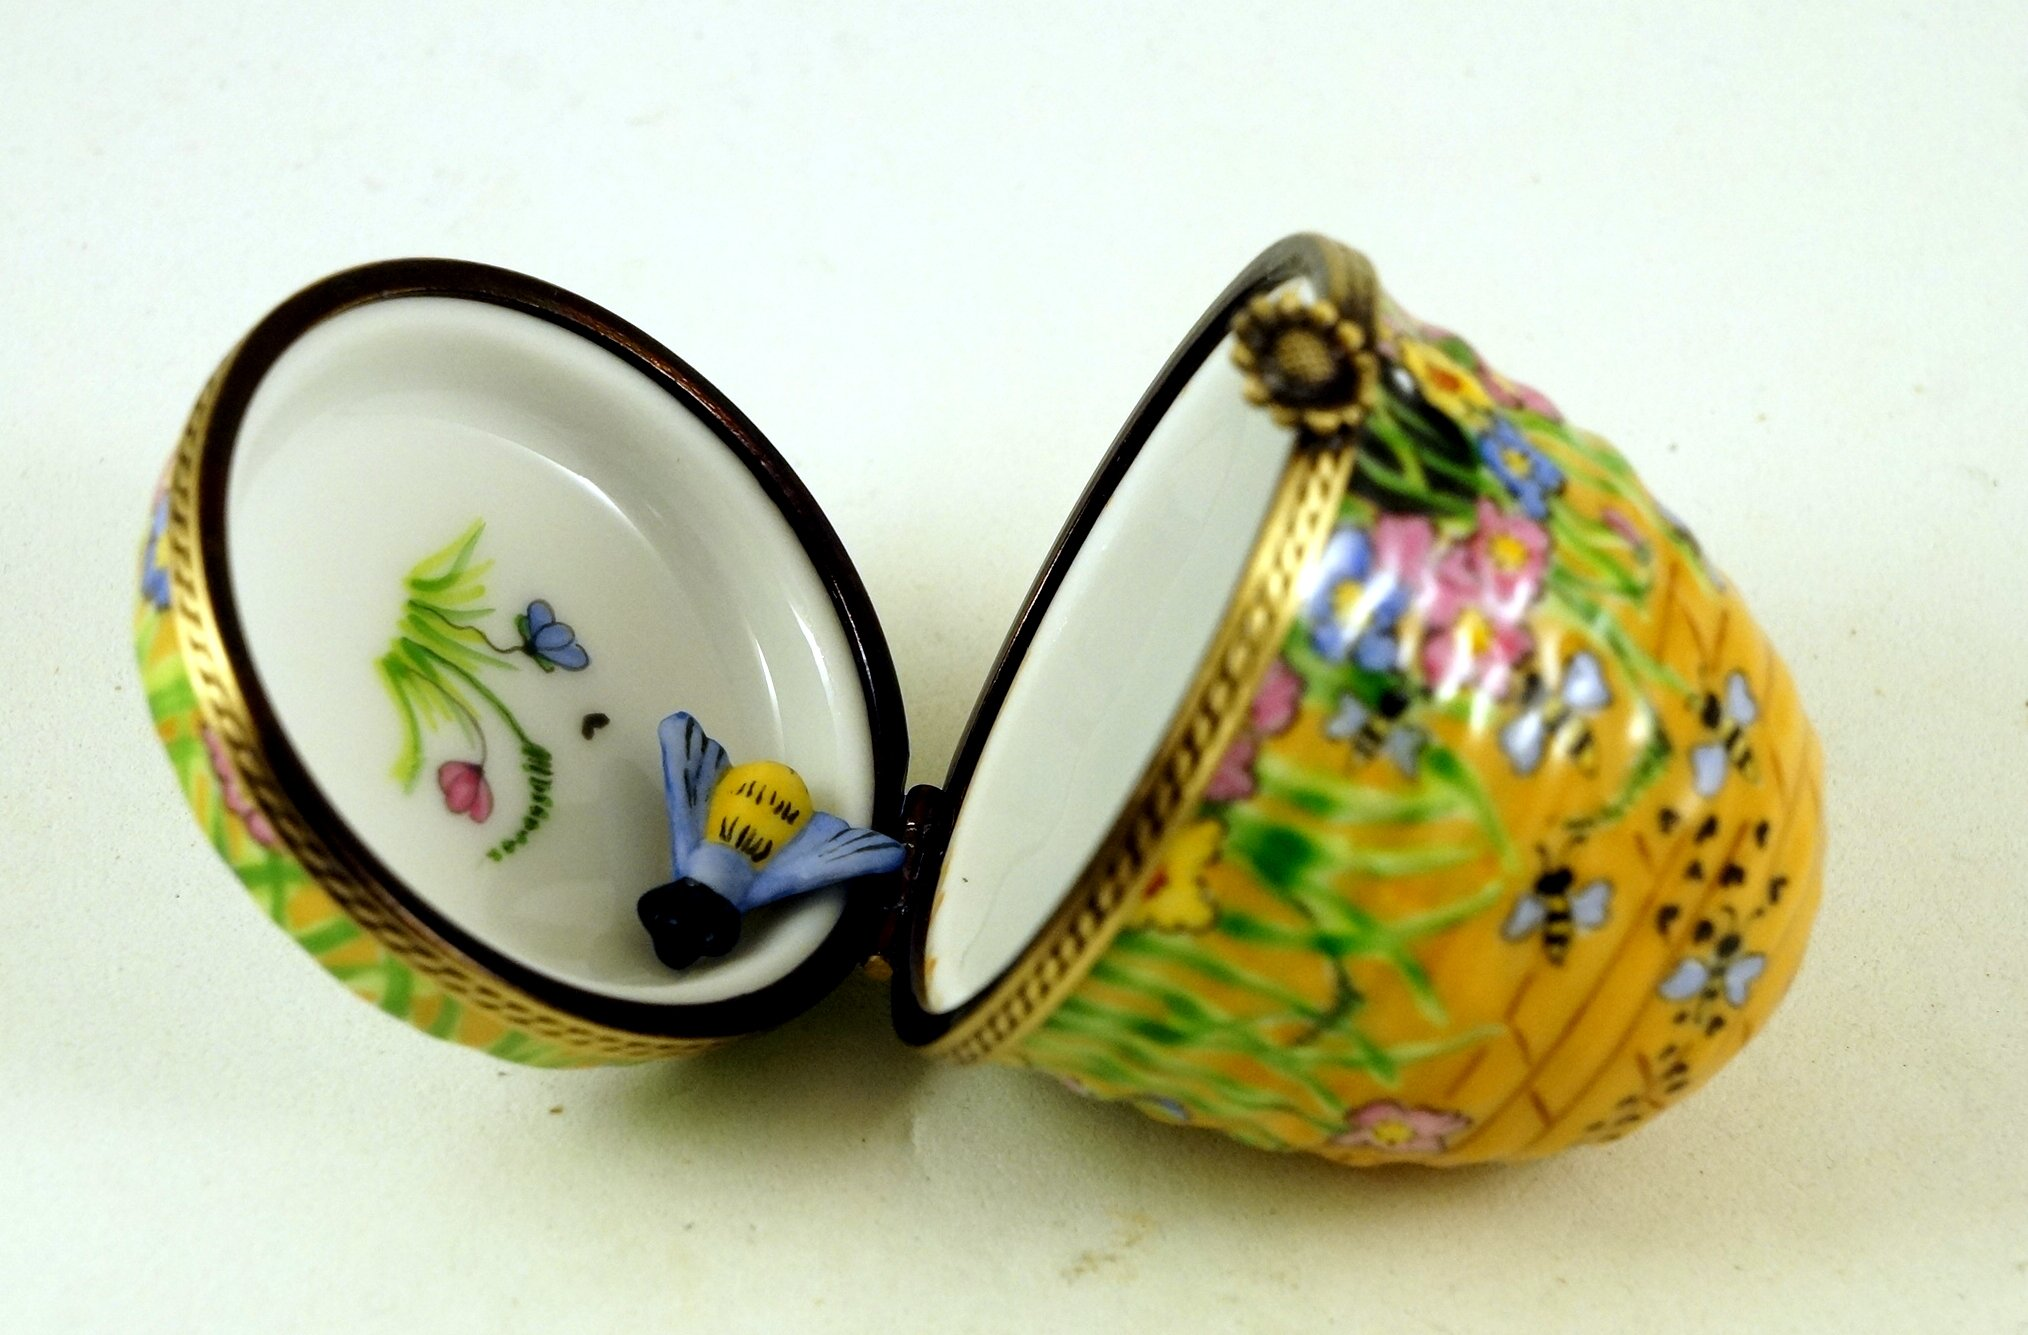 Authentic French Porcelain Hand Painted Limoges Trinket Box Amazing Colorful Beehive with Miniature Porcelain Removable Bee by Authentic Limoges Boxes (Image #4)